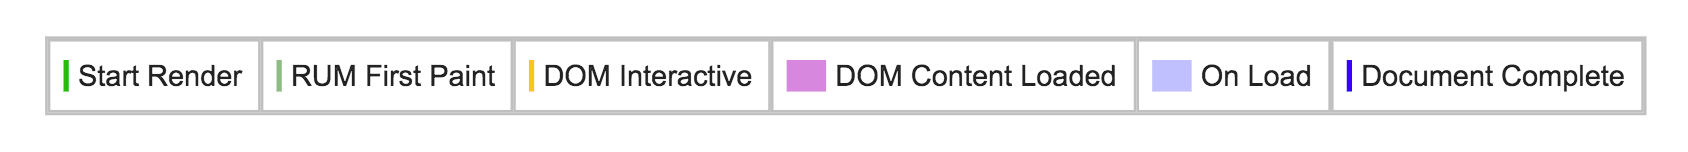 Key for the vertical lines displayed on the timeline. From left to right: Start render, RUM first paint, DOM interactive, DOM content loaded, On load, Document complete.